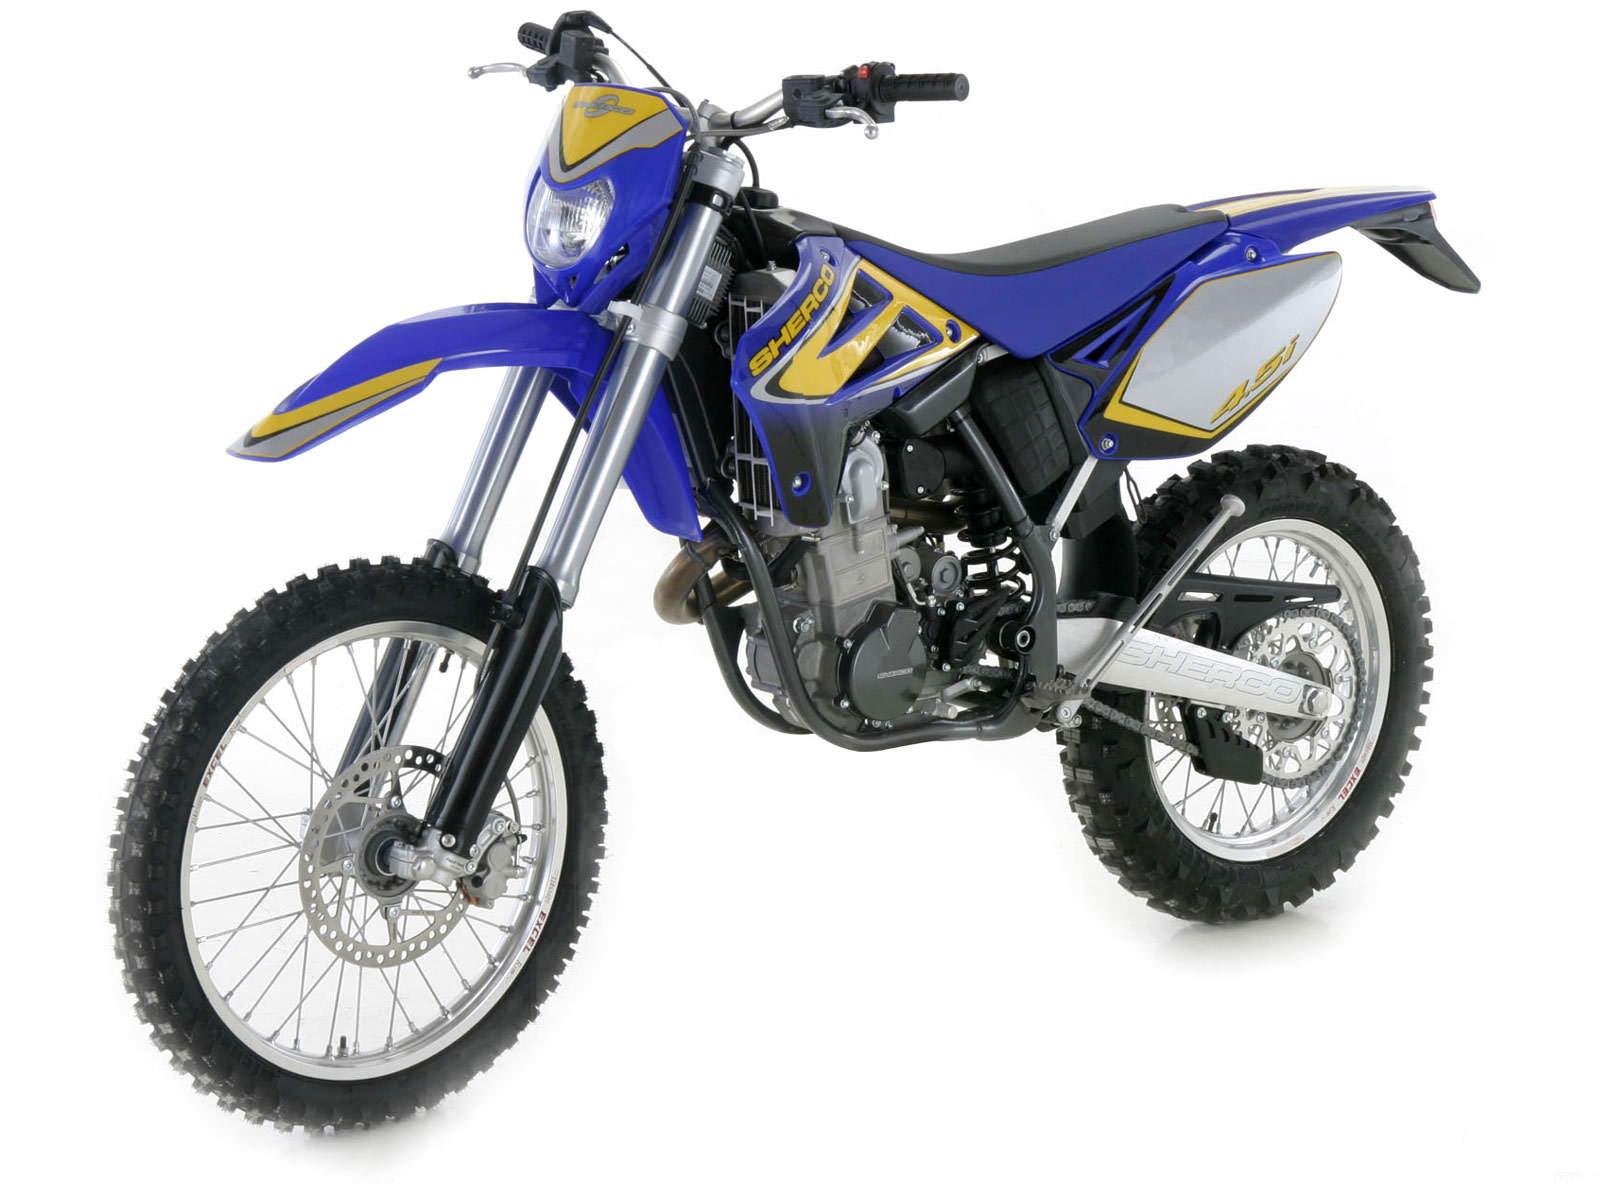 Sherco 125cc Enduro Shark Replica 2007 images #124654